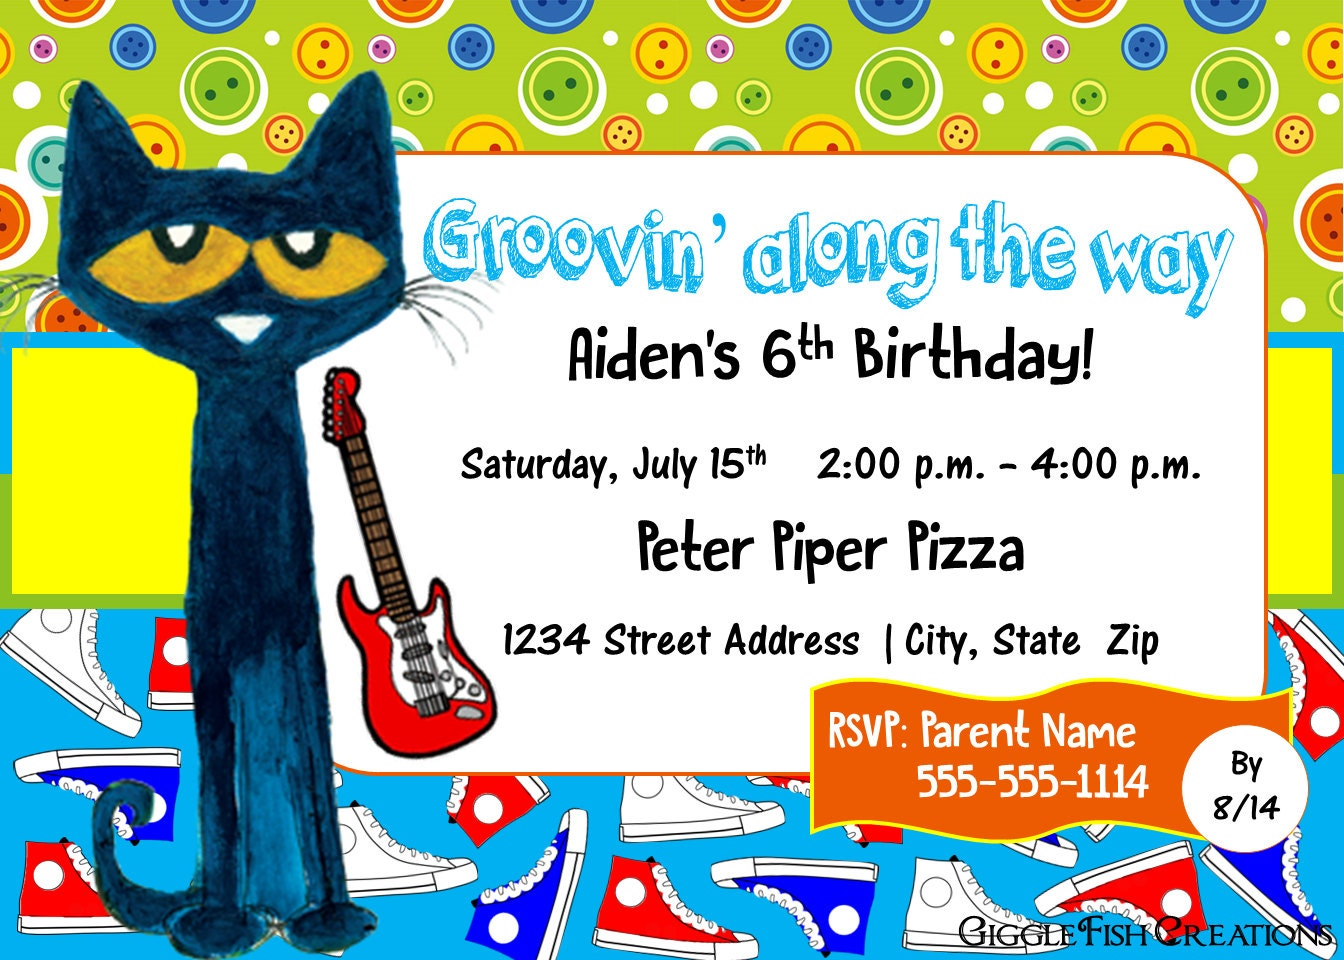 Pete the Cat Birthday Party Invitation Digital File   Etsy